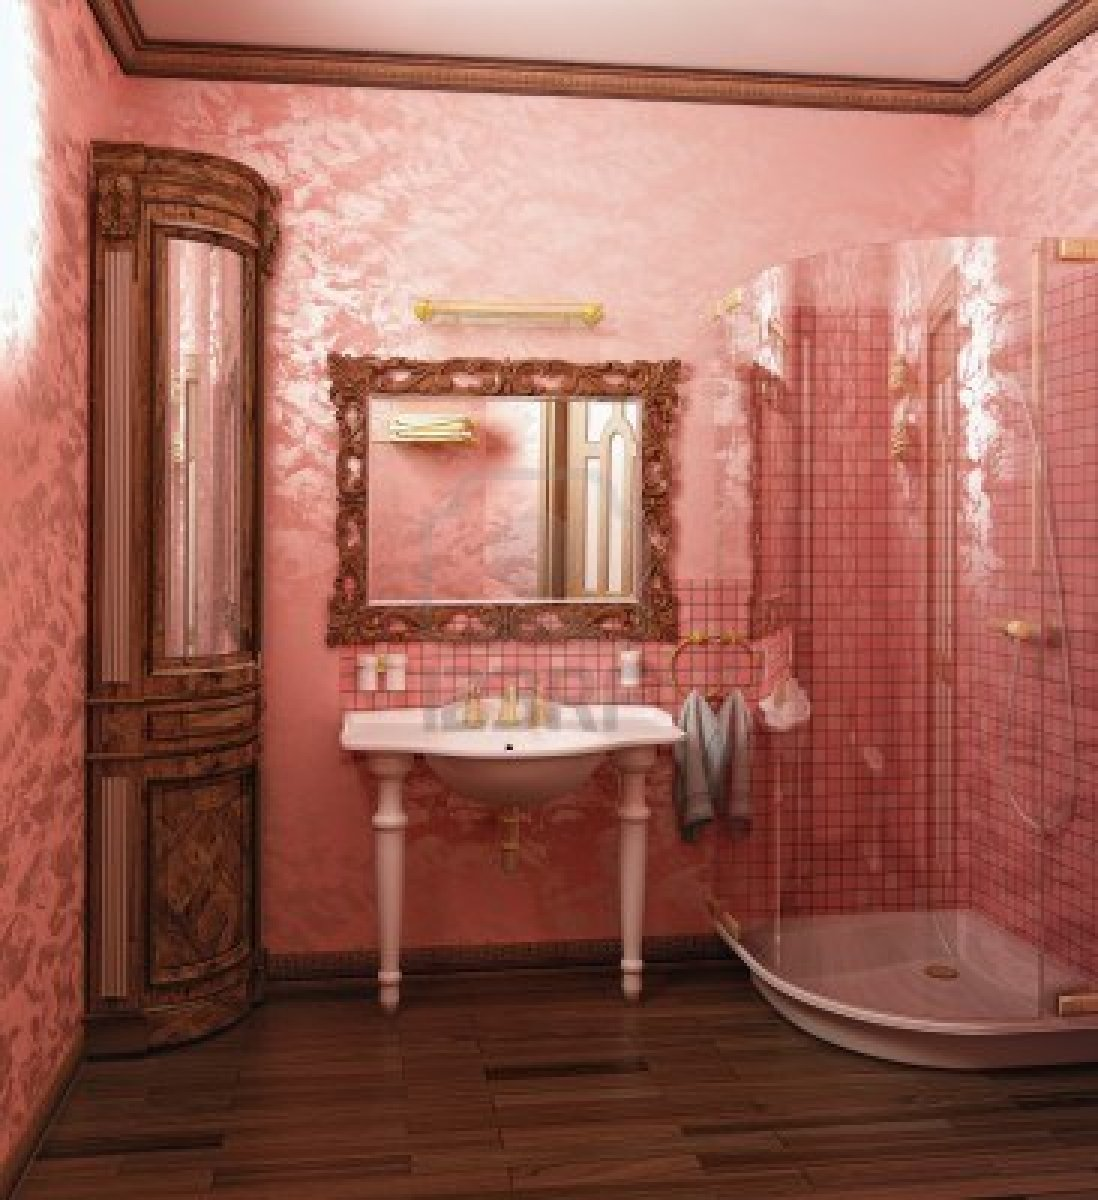 Kitchen Interior With Pink Furniture And Tiles Stock: 40 Vintage Pink Bathroom Tile Ideas And Pictures 2019